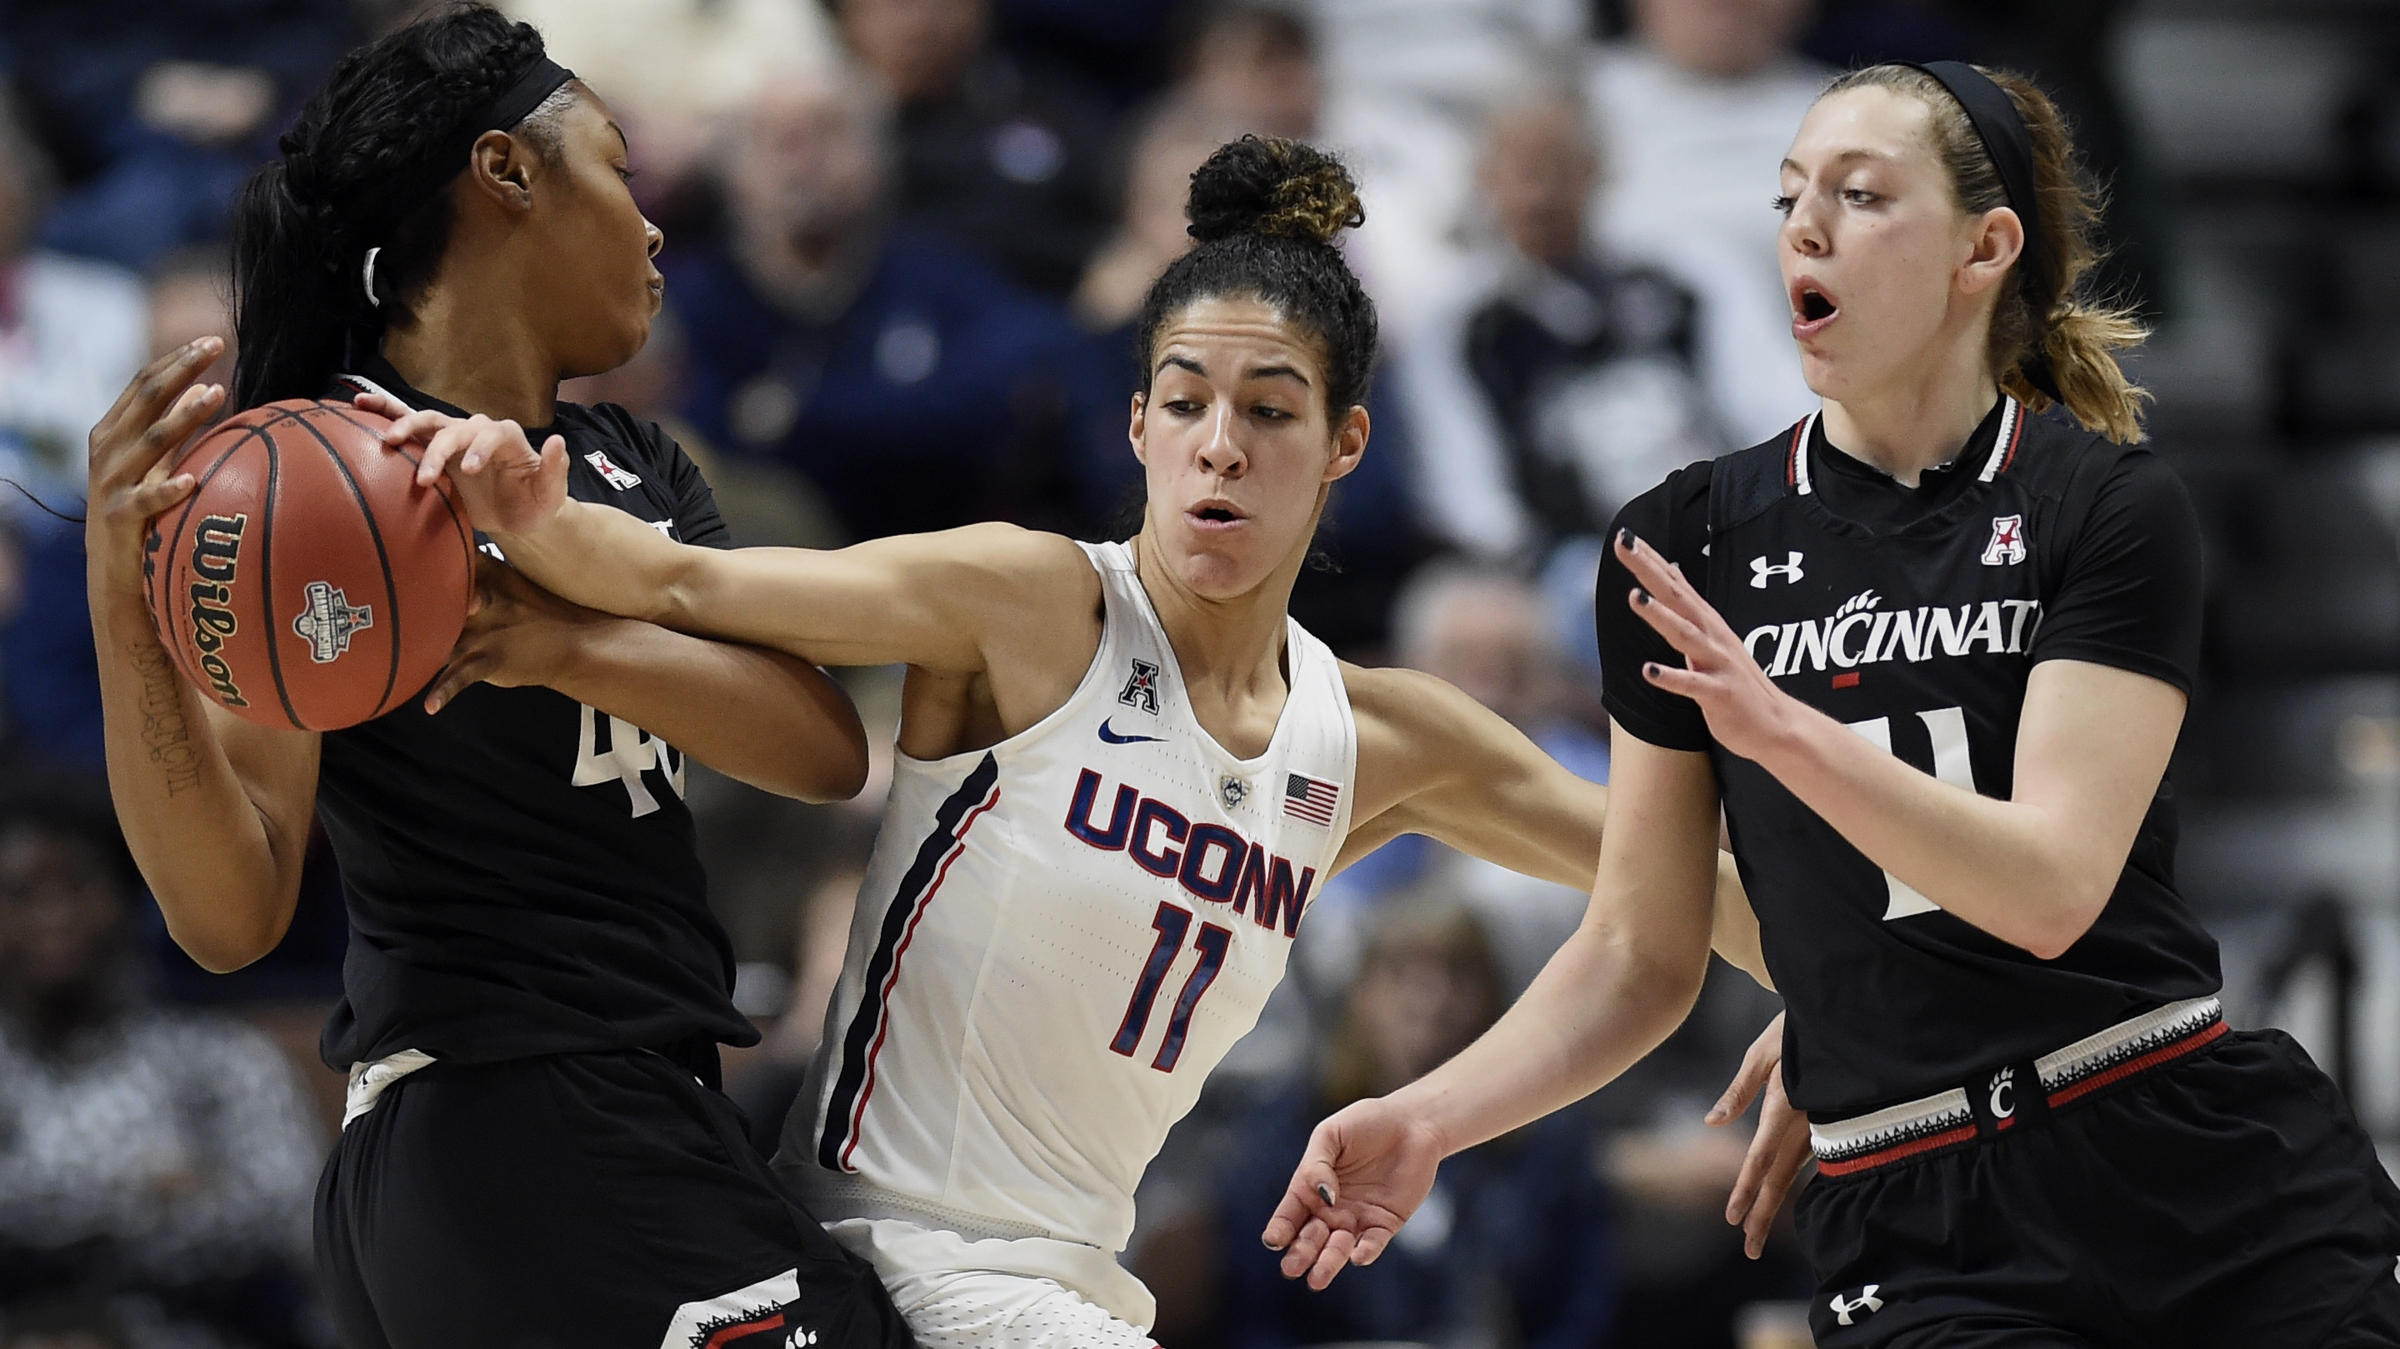 March Madness 2018: NCAA women's basketball tournament schedule